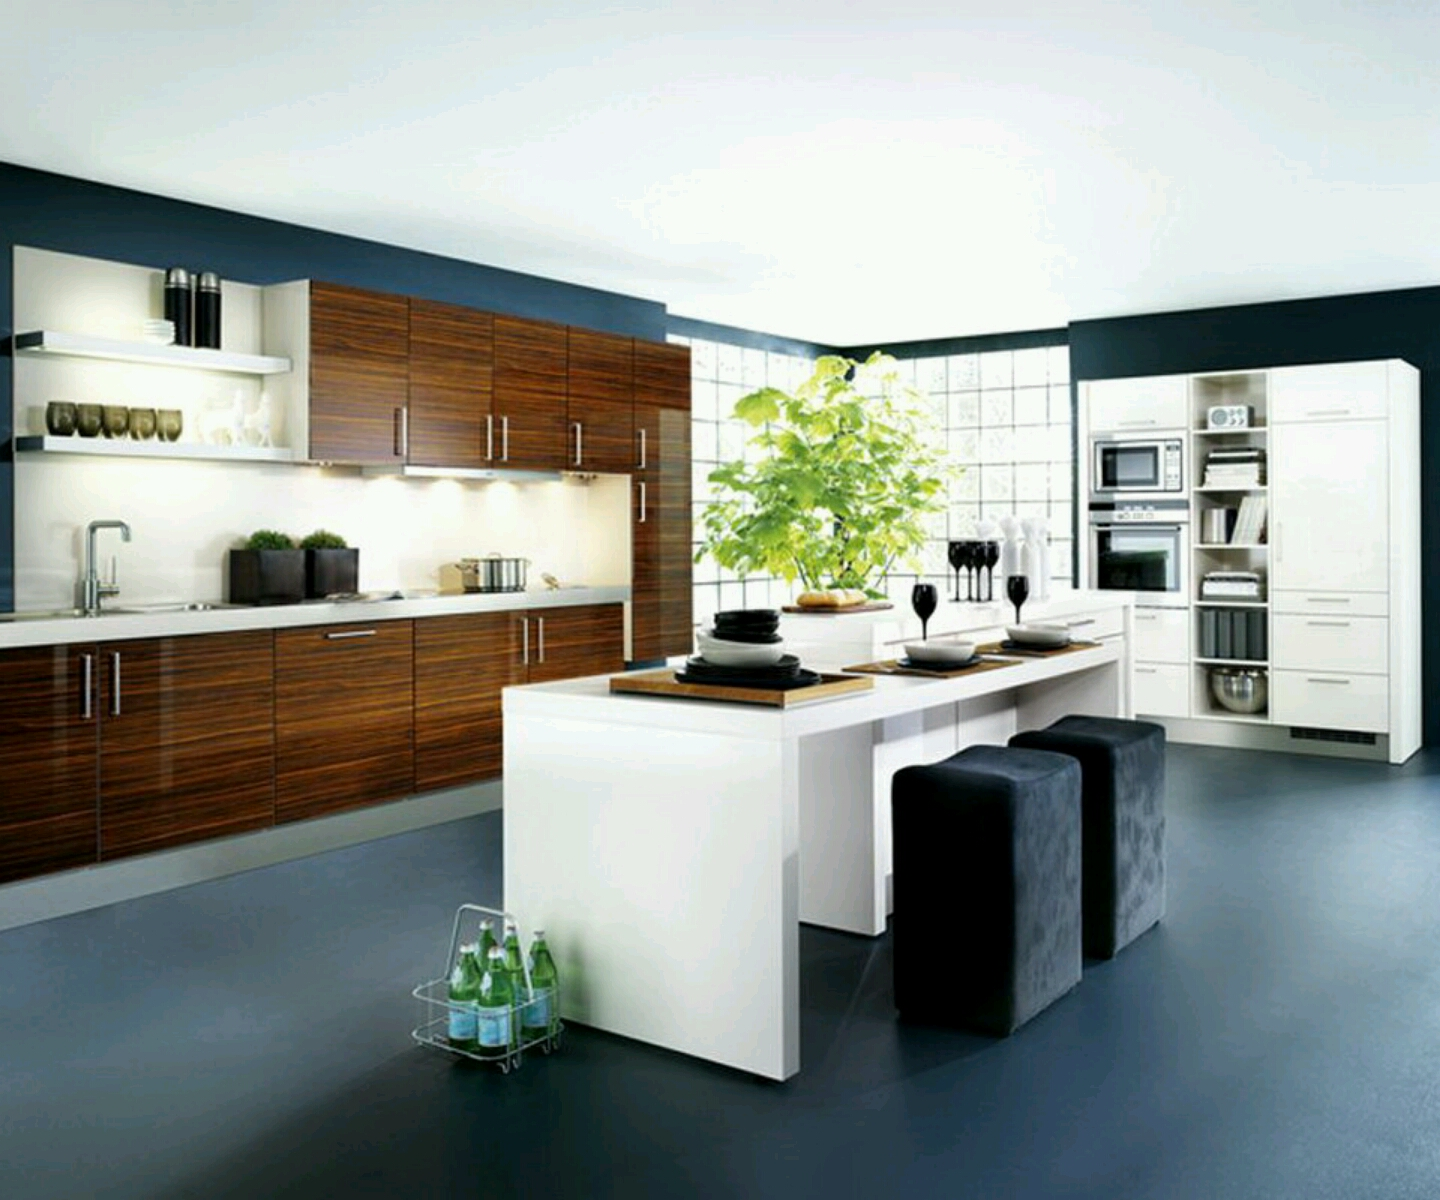 new home designs latest kitchen cabinets designs modern On modern kitchen images ideas